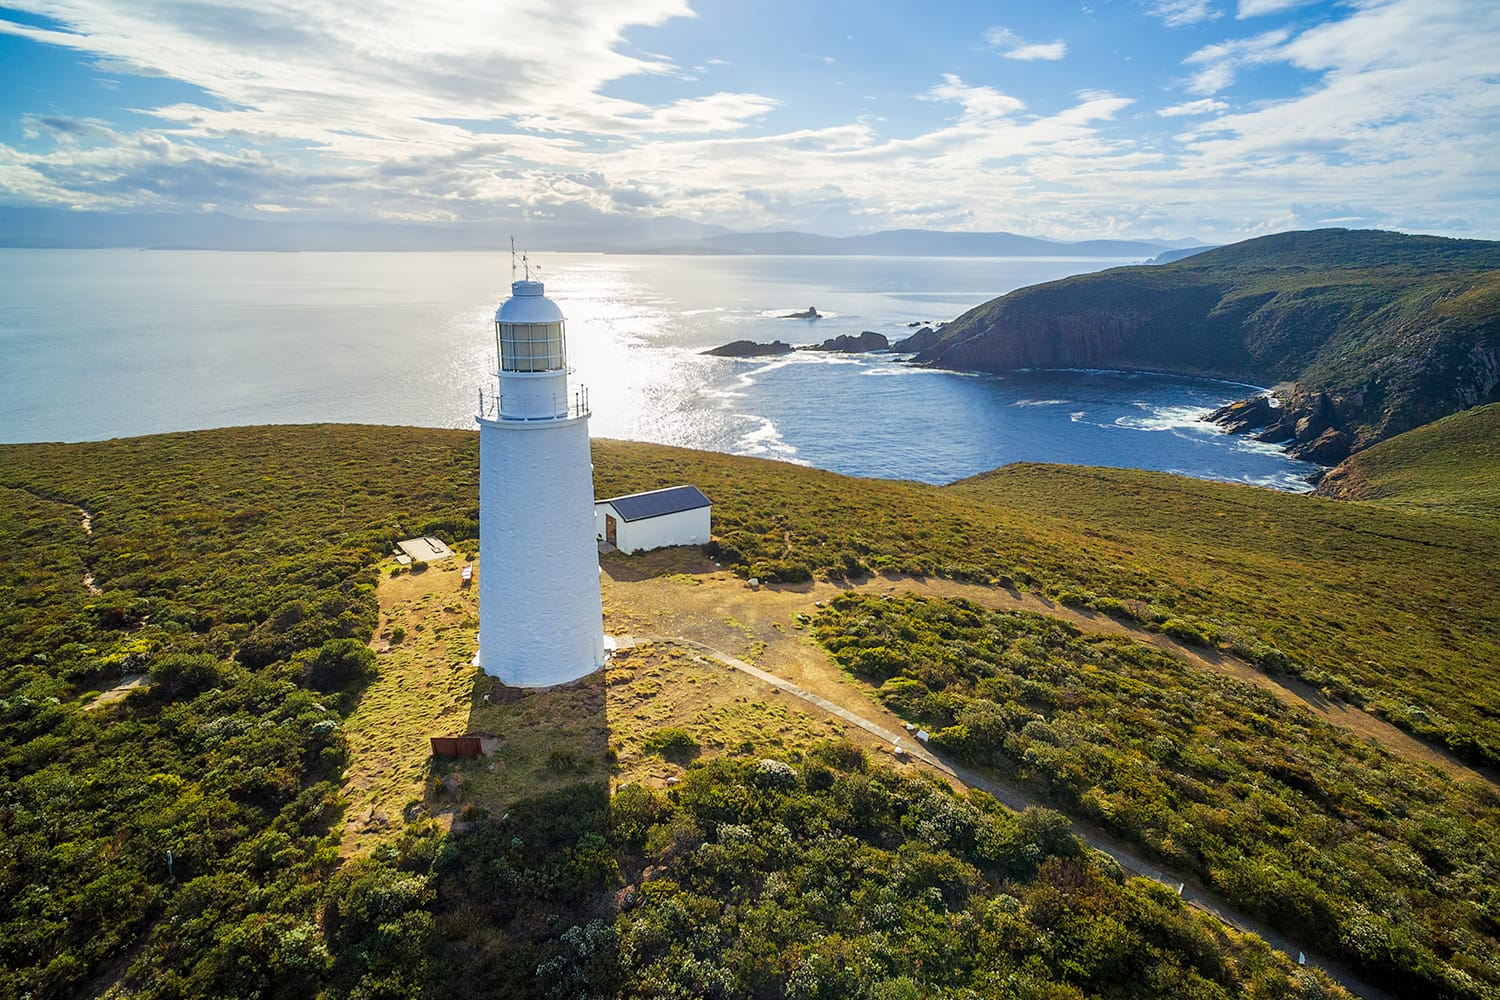 Aerial view of Bruny Island Lighthouse at sunset. Tasmania, Australia